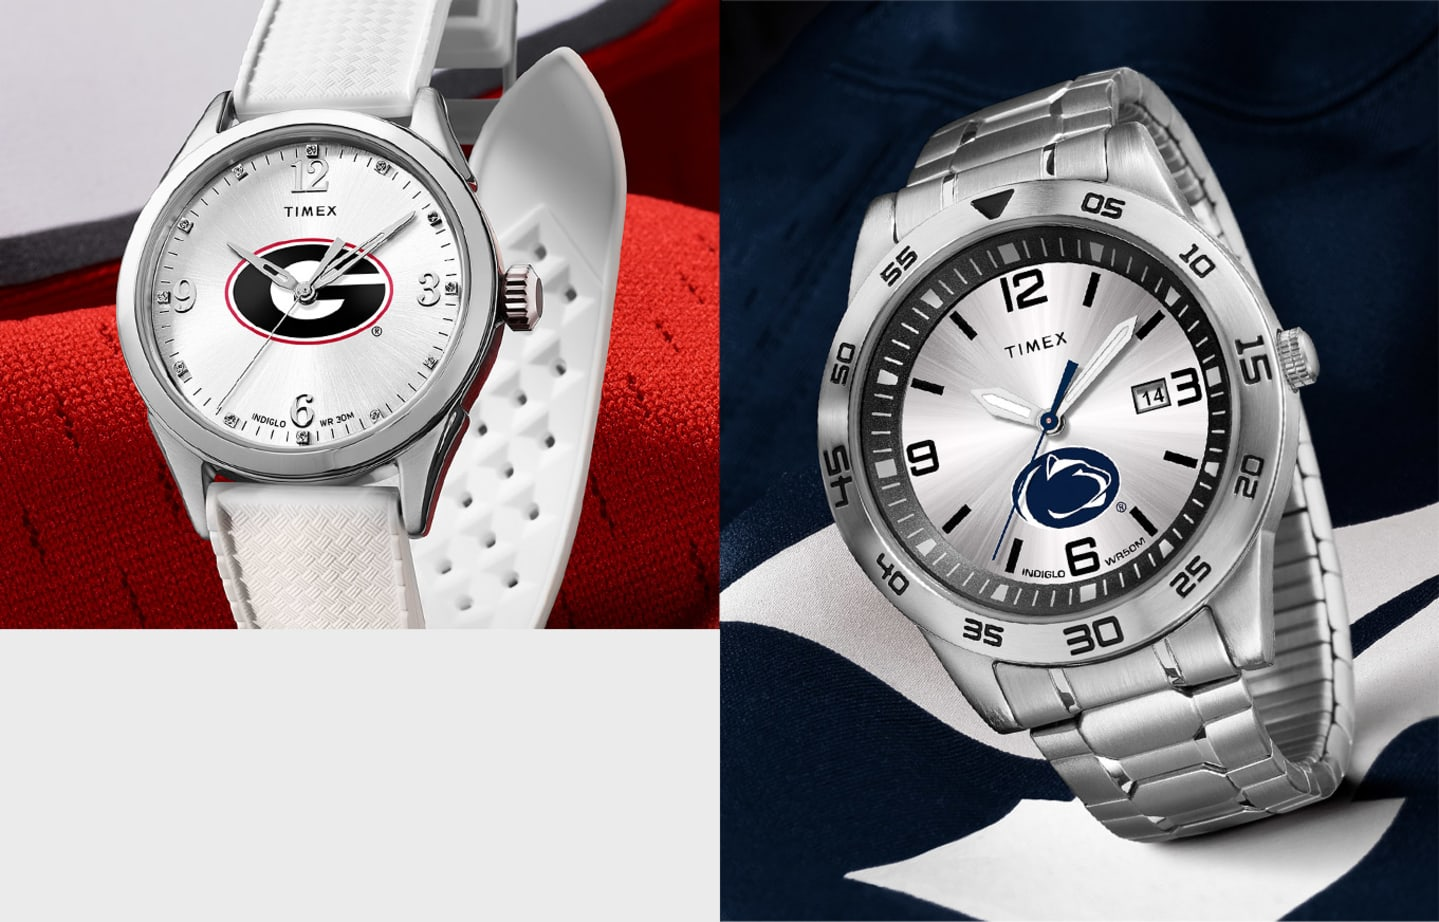 Women's Silver Georgia Watch With White Straps And Logo In Center On Left and Men's All Silver Penn State Watch With Logo In Center